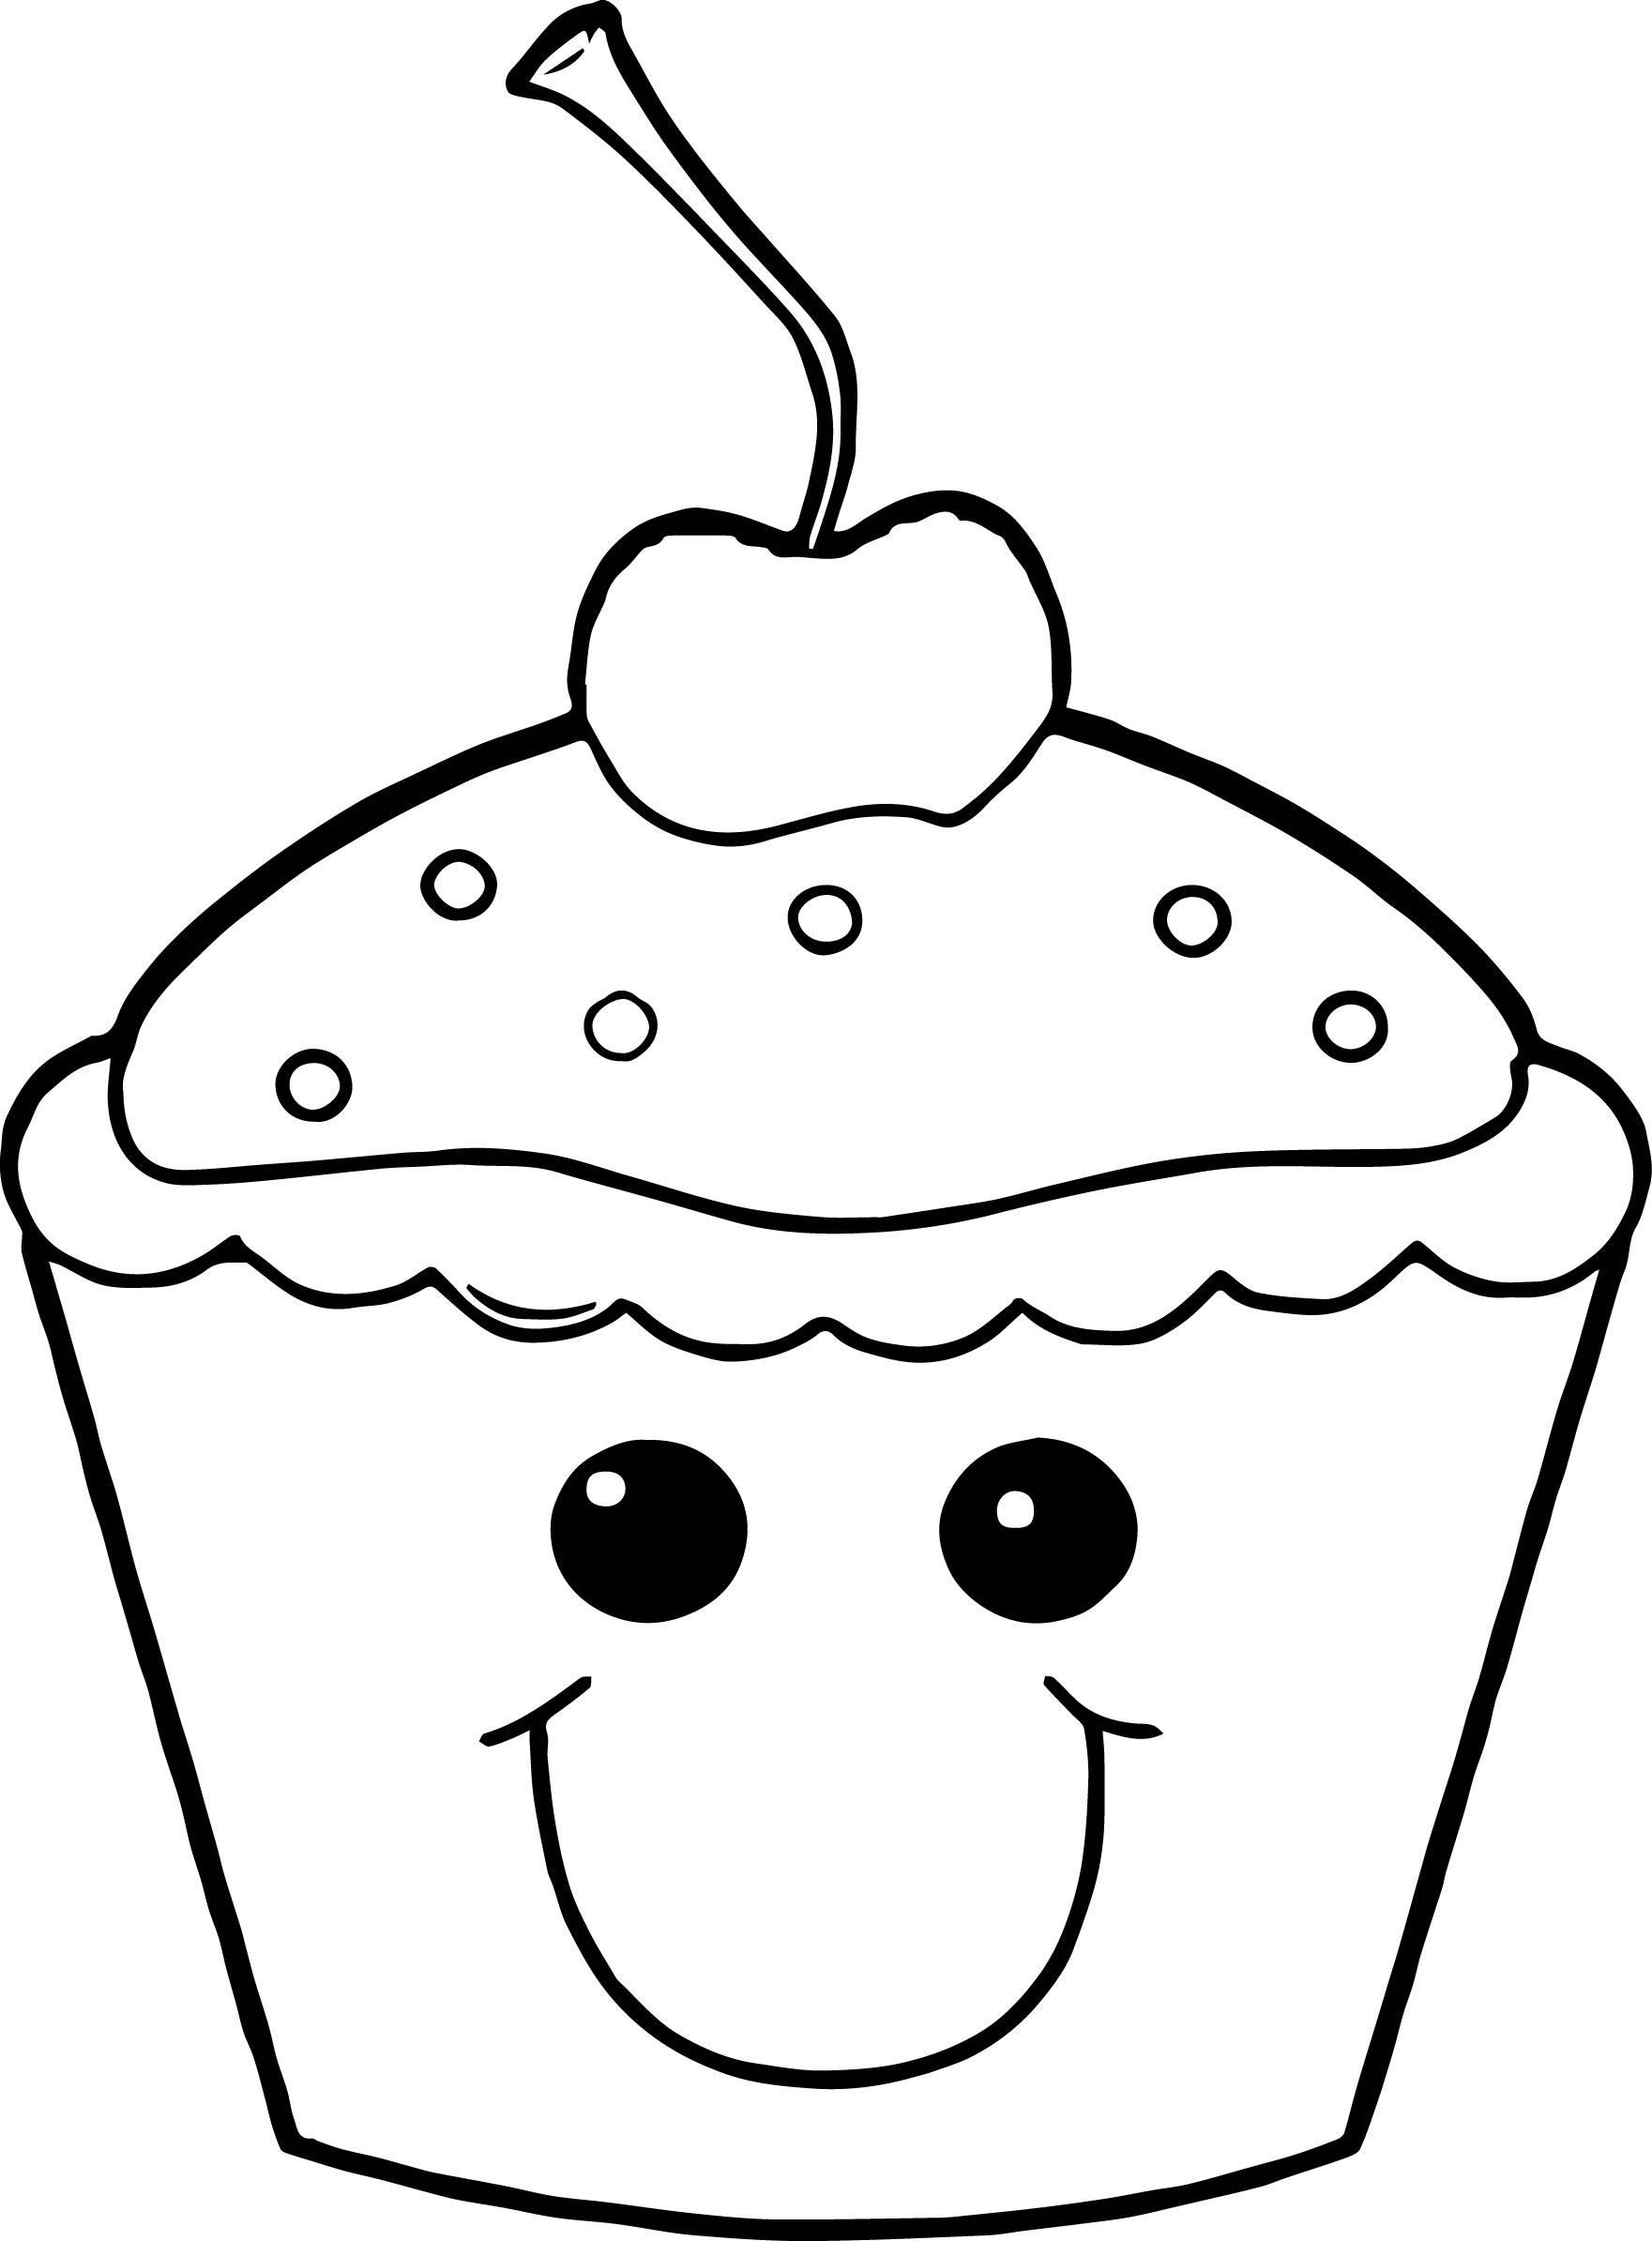 58 Cartoon Cupcake Coloring Pages Download Free Images